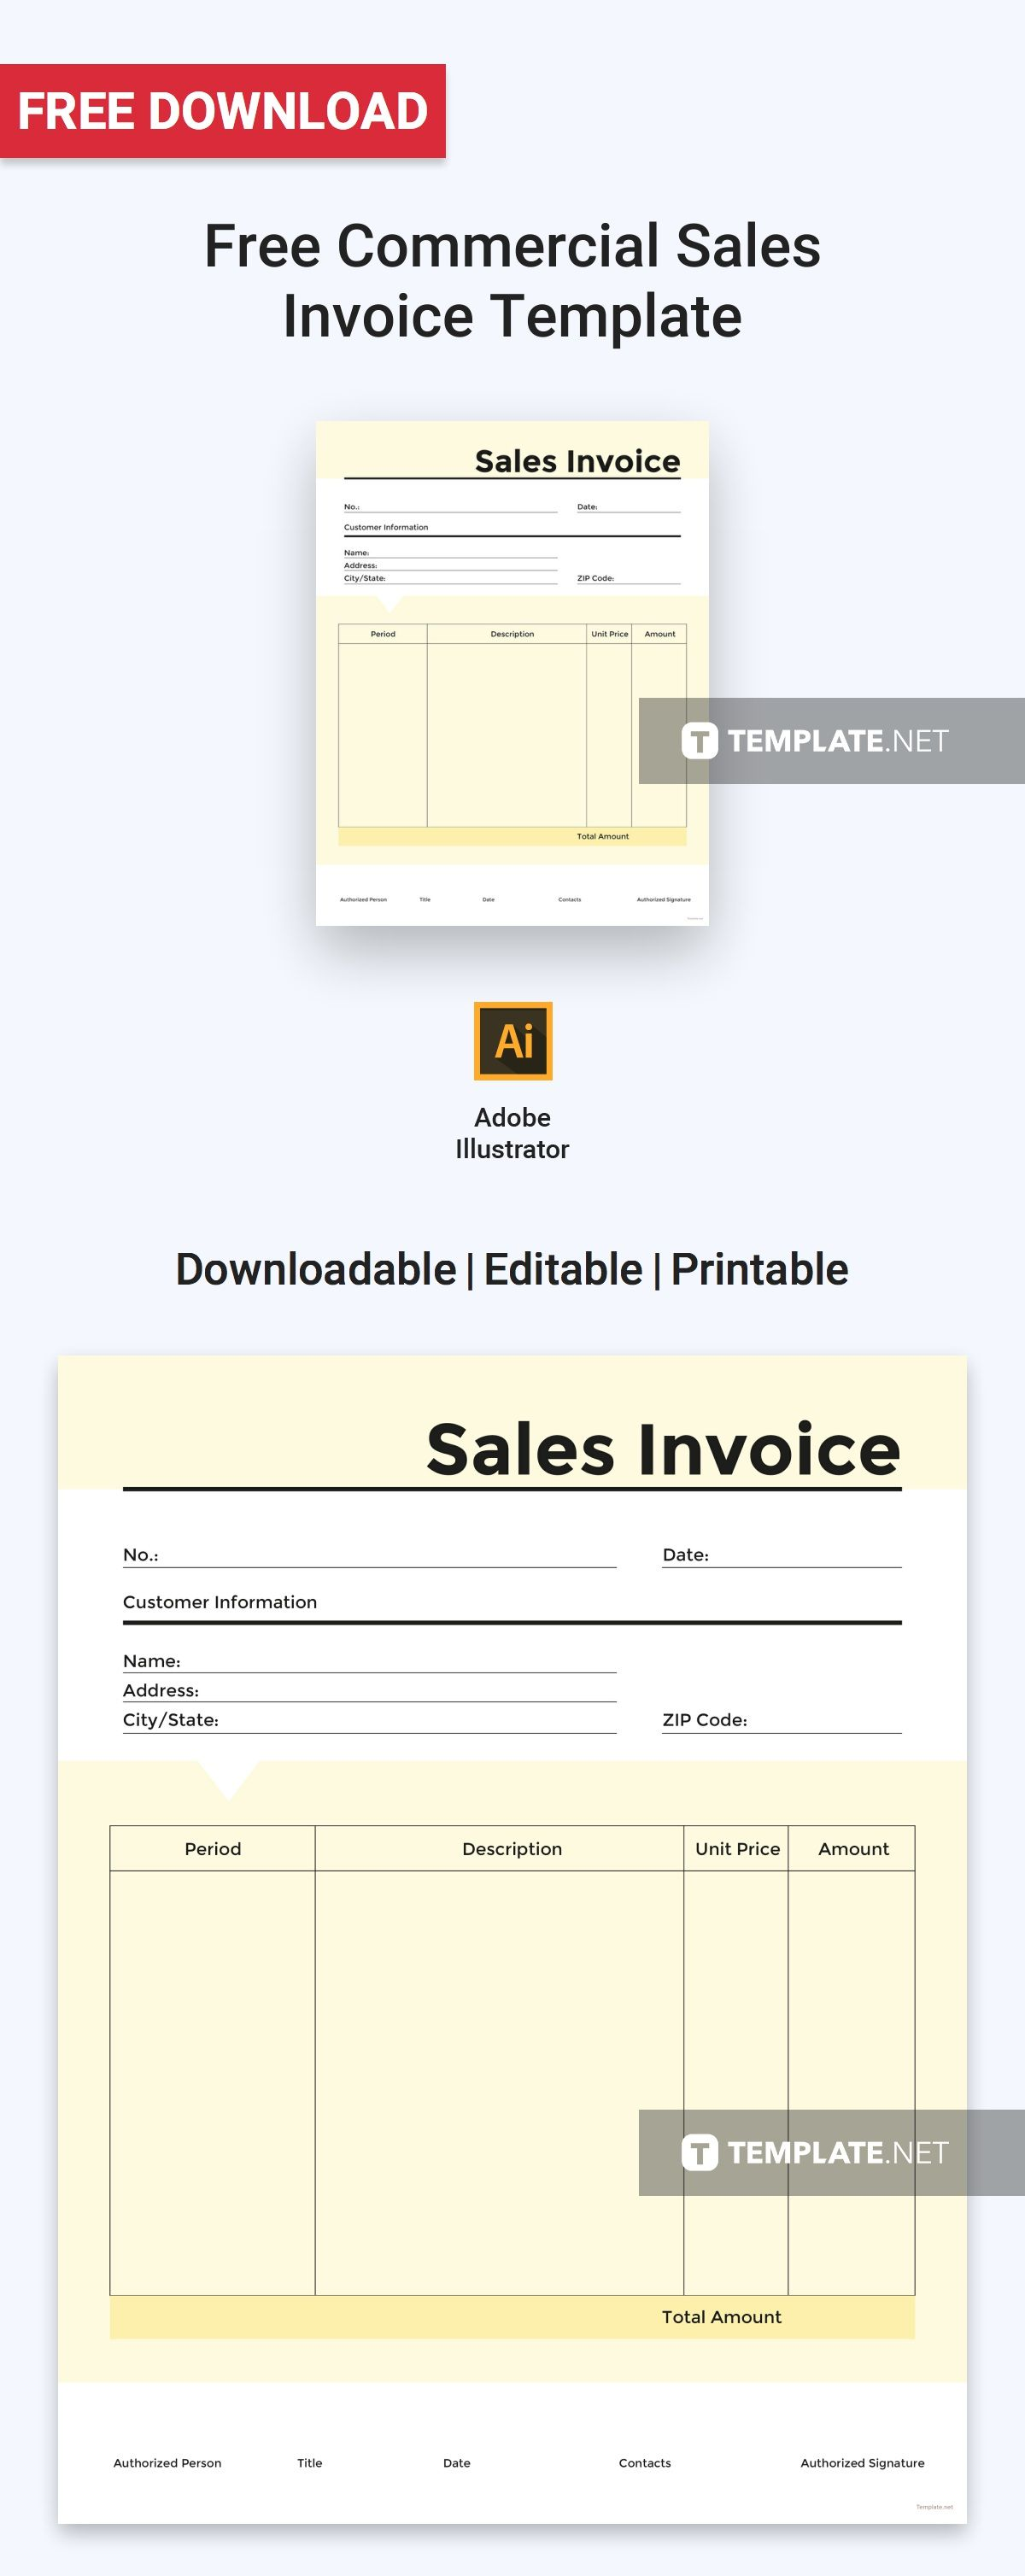 Commercial Sales Invoice Template Free Pdf Word Psd Google Docs Illustrator Invoice Template Invoice Design Template Templates